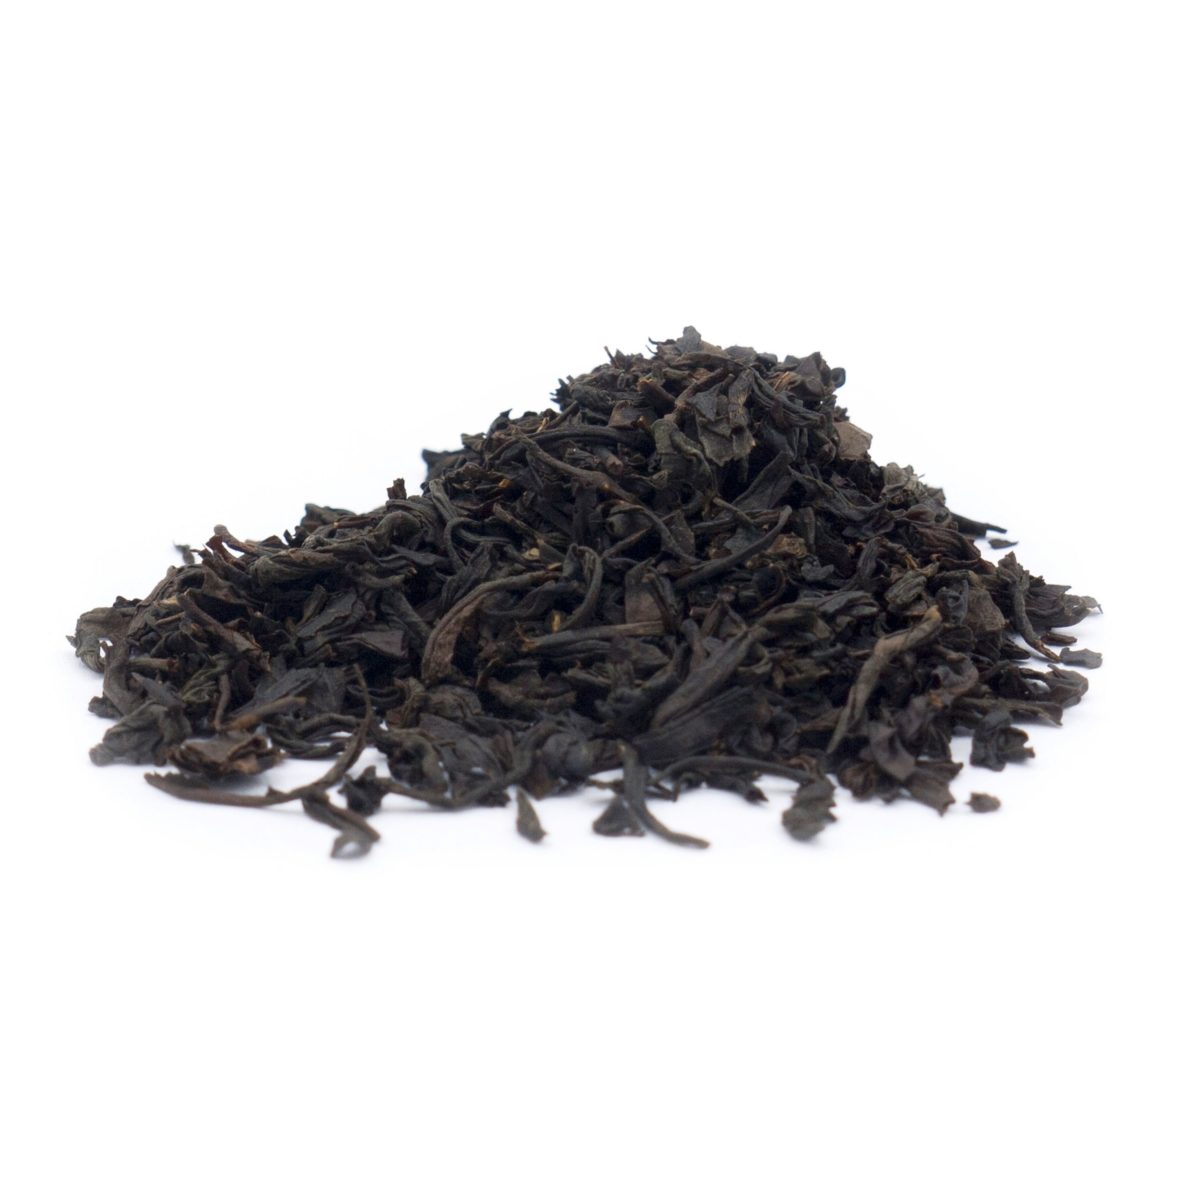 Lapsang Souchong losse zwarte thee